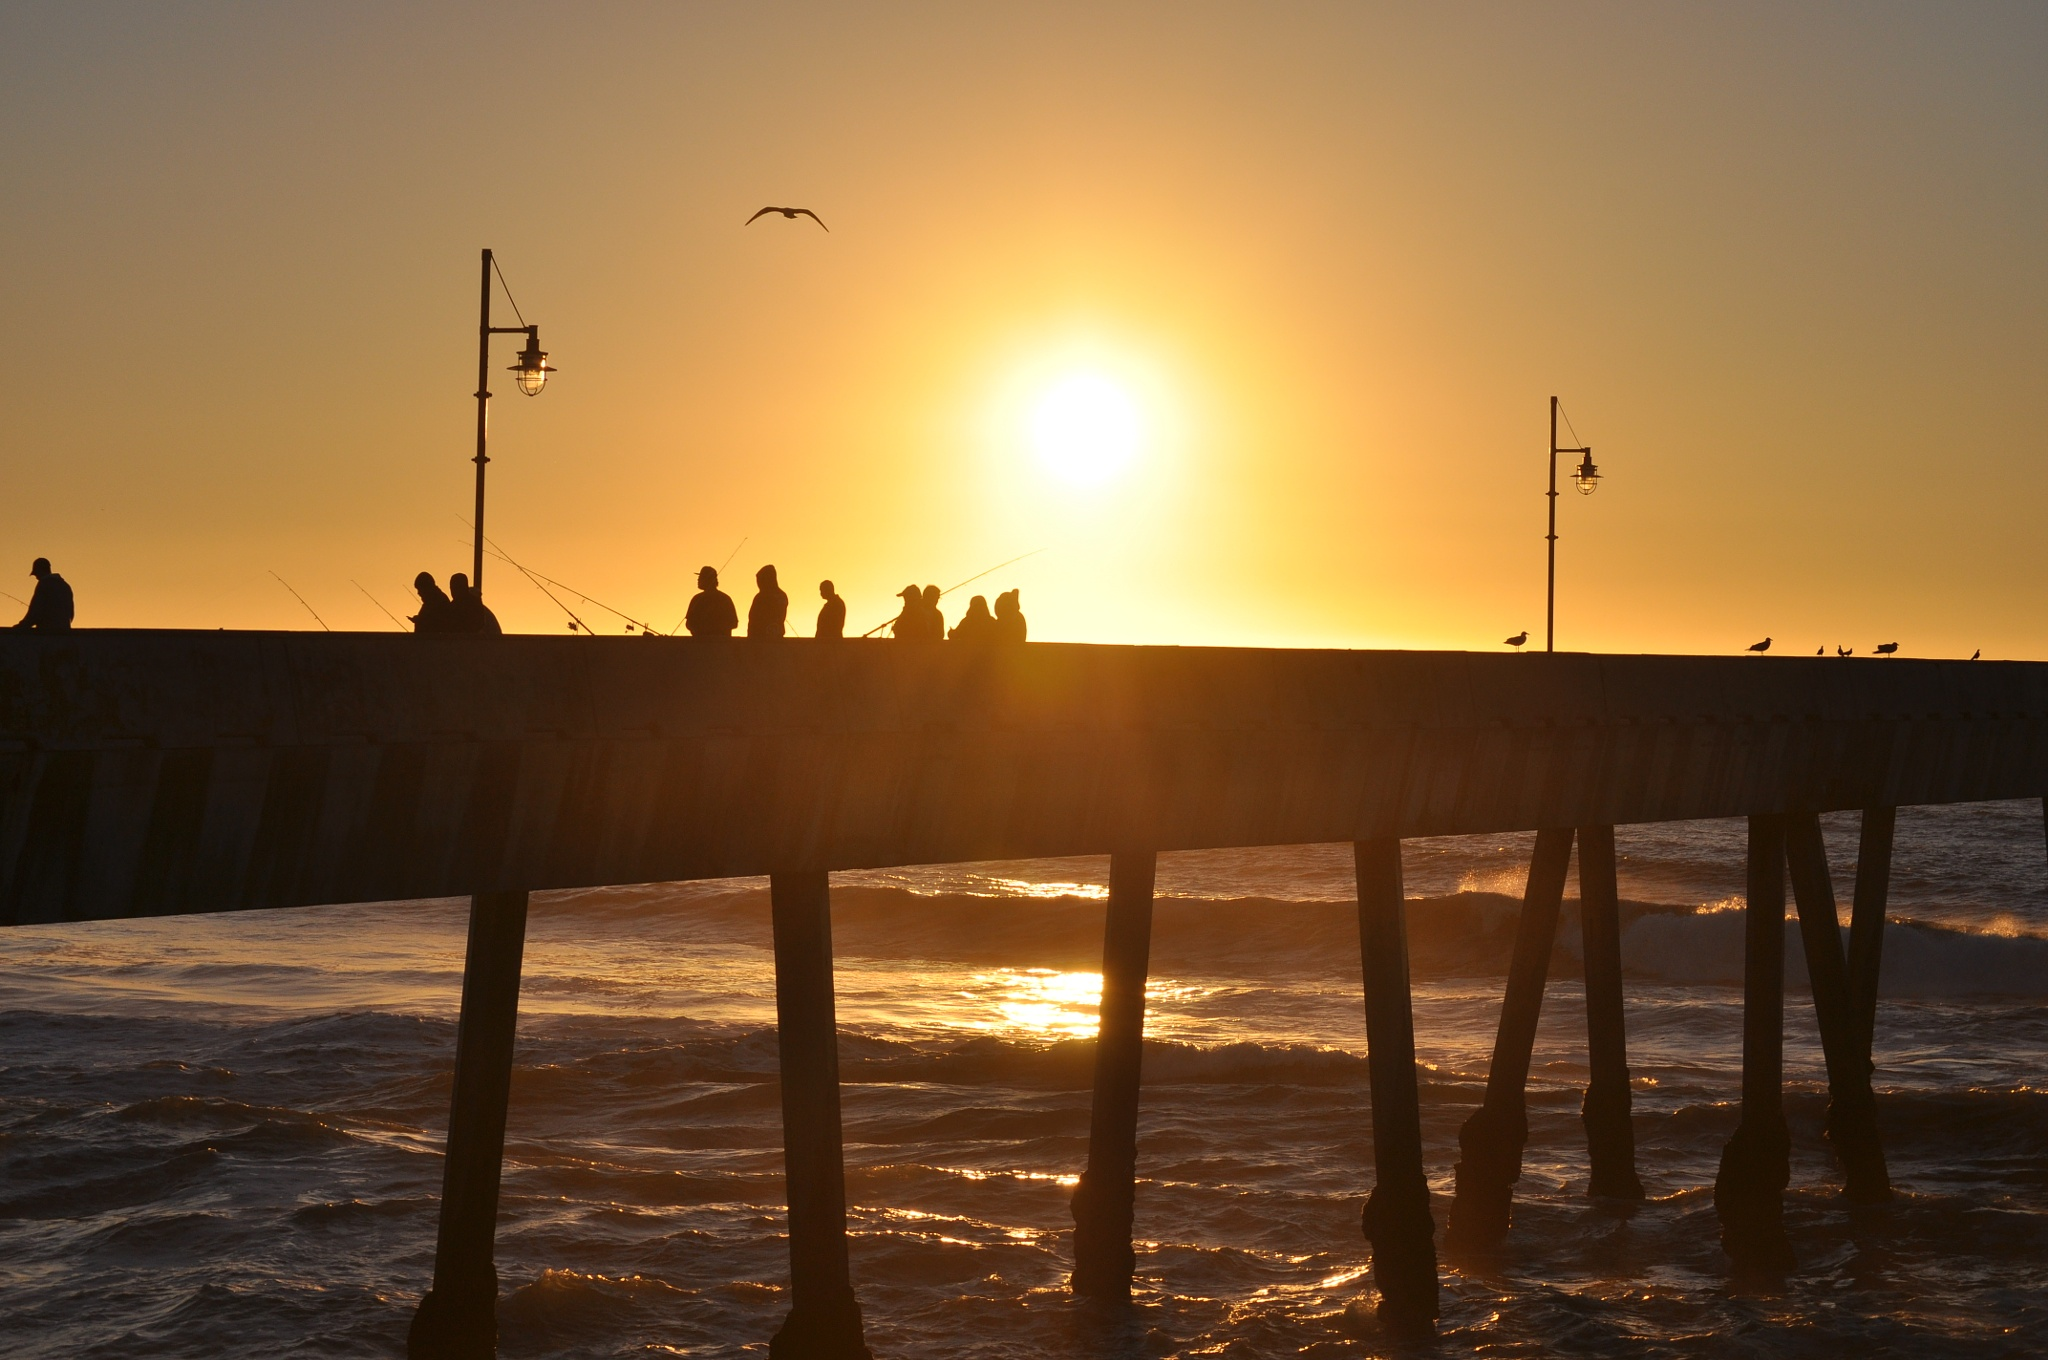 Sunset at Pacifica Pier by Gerard Francis Corbett